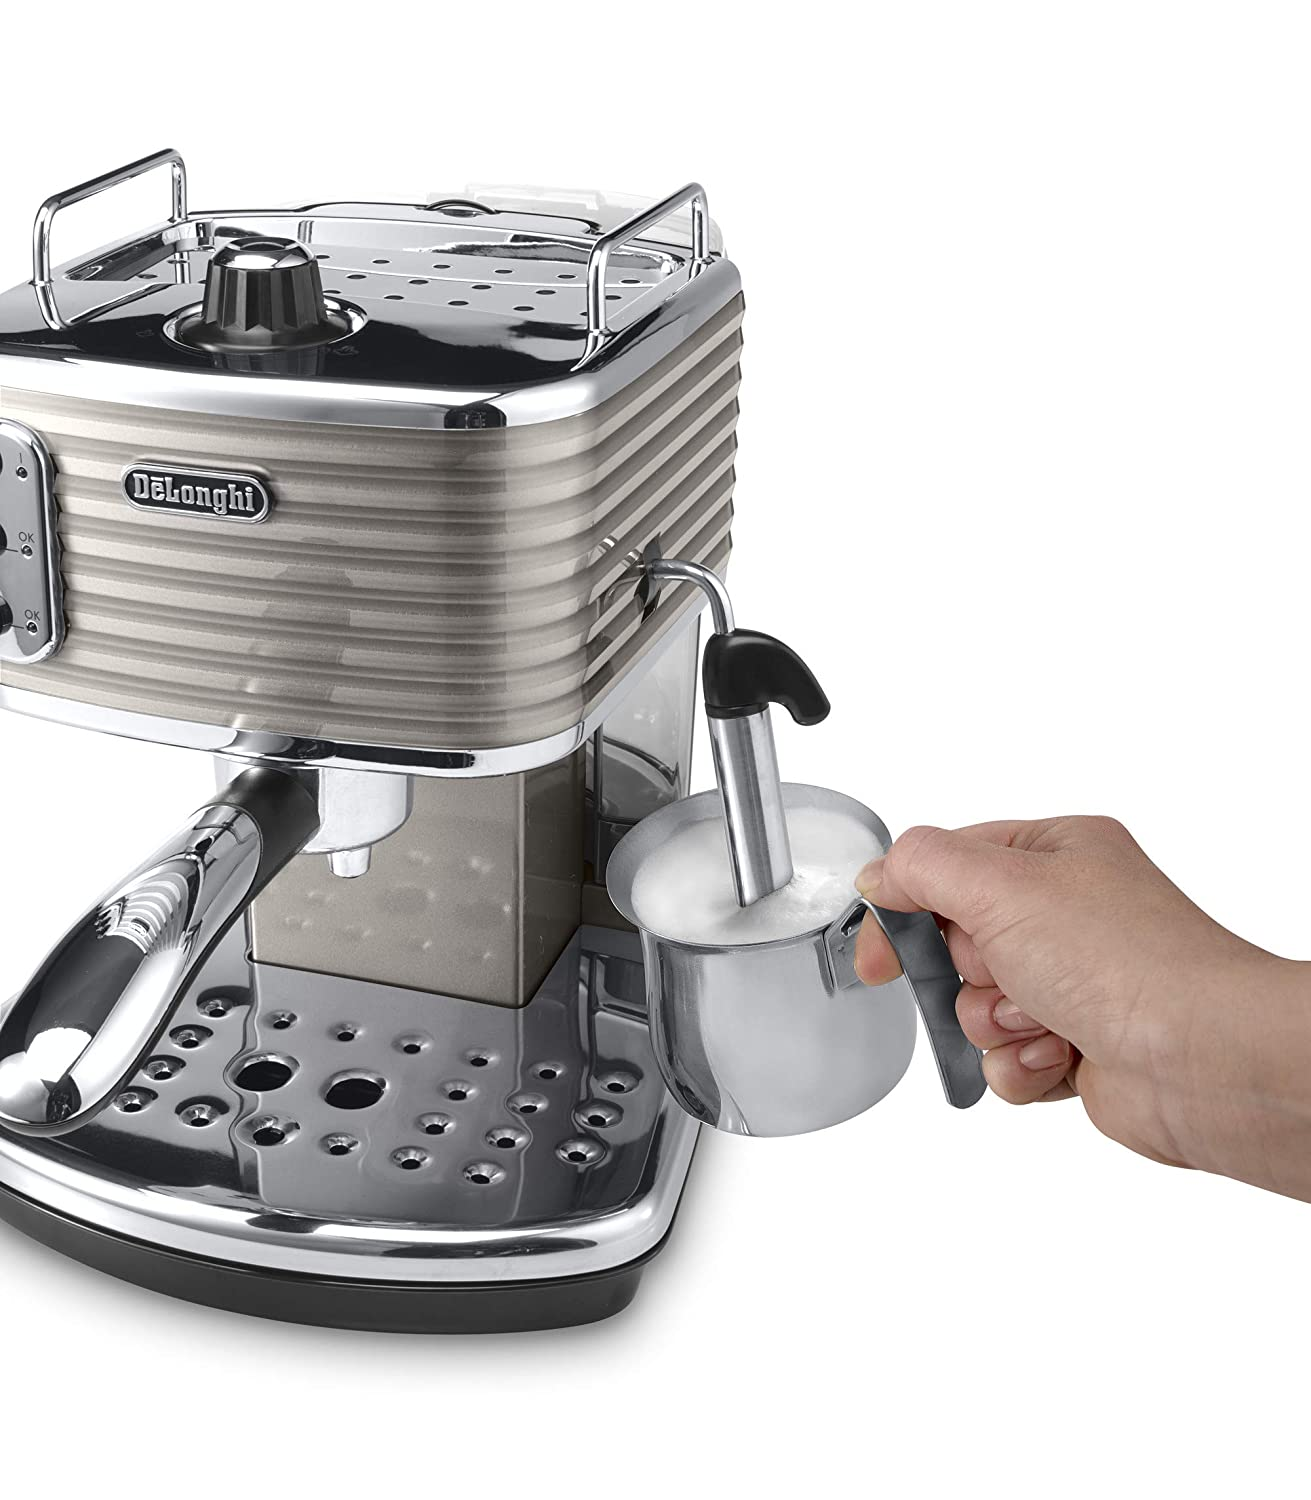 Top 8 Best Coffee Machine For Home Reviews in 2020 7